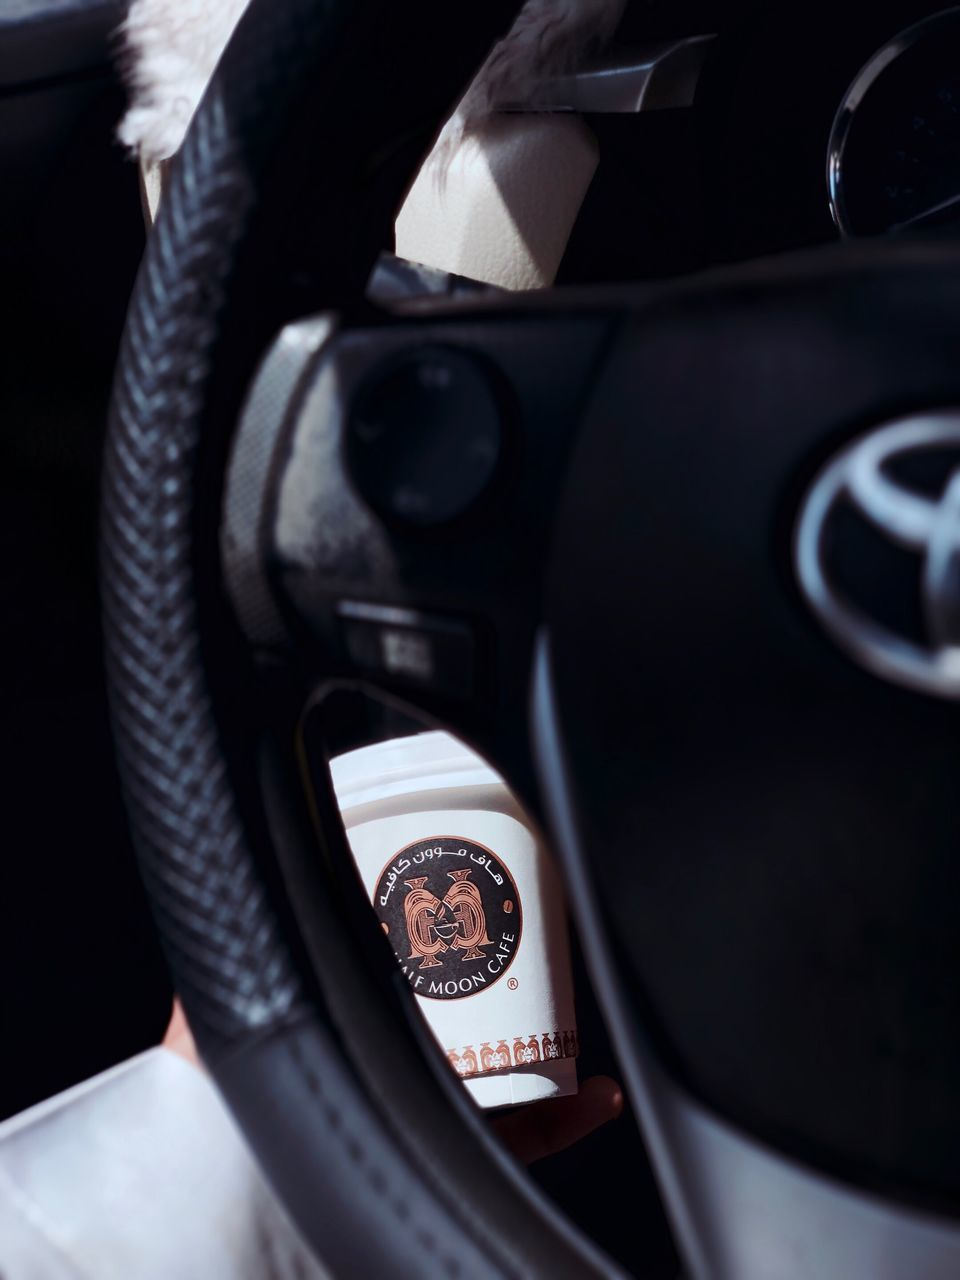 close-up, no people, indoors, vehicle interior, number, technology, equipment, gearshift, car interior, still life, transportation, black color, mode of transportation, communication, photography themes, focus on foreground, control, selective focus, text, shape